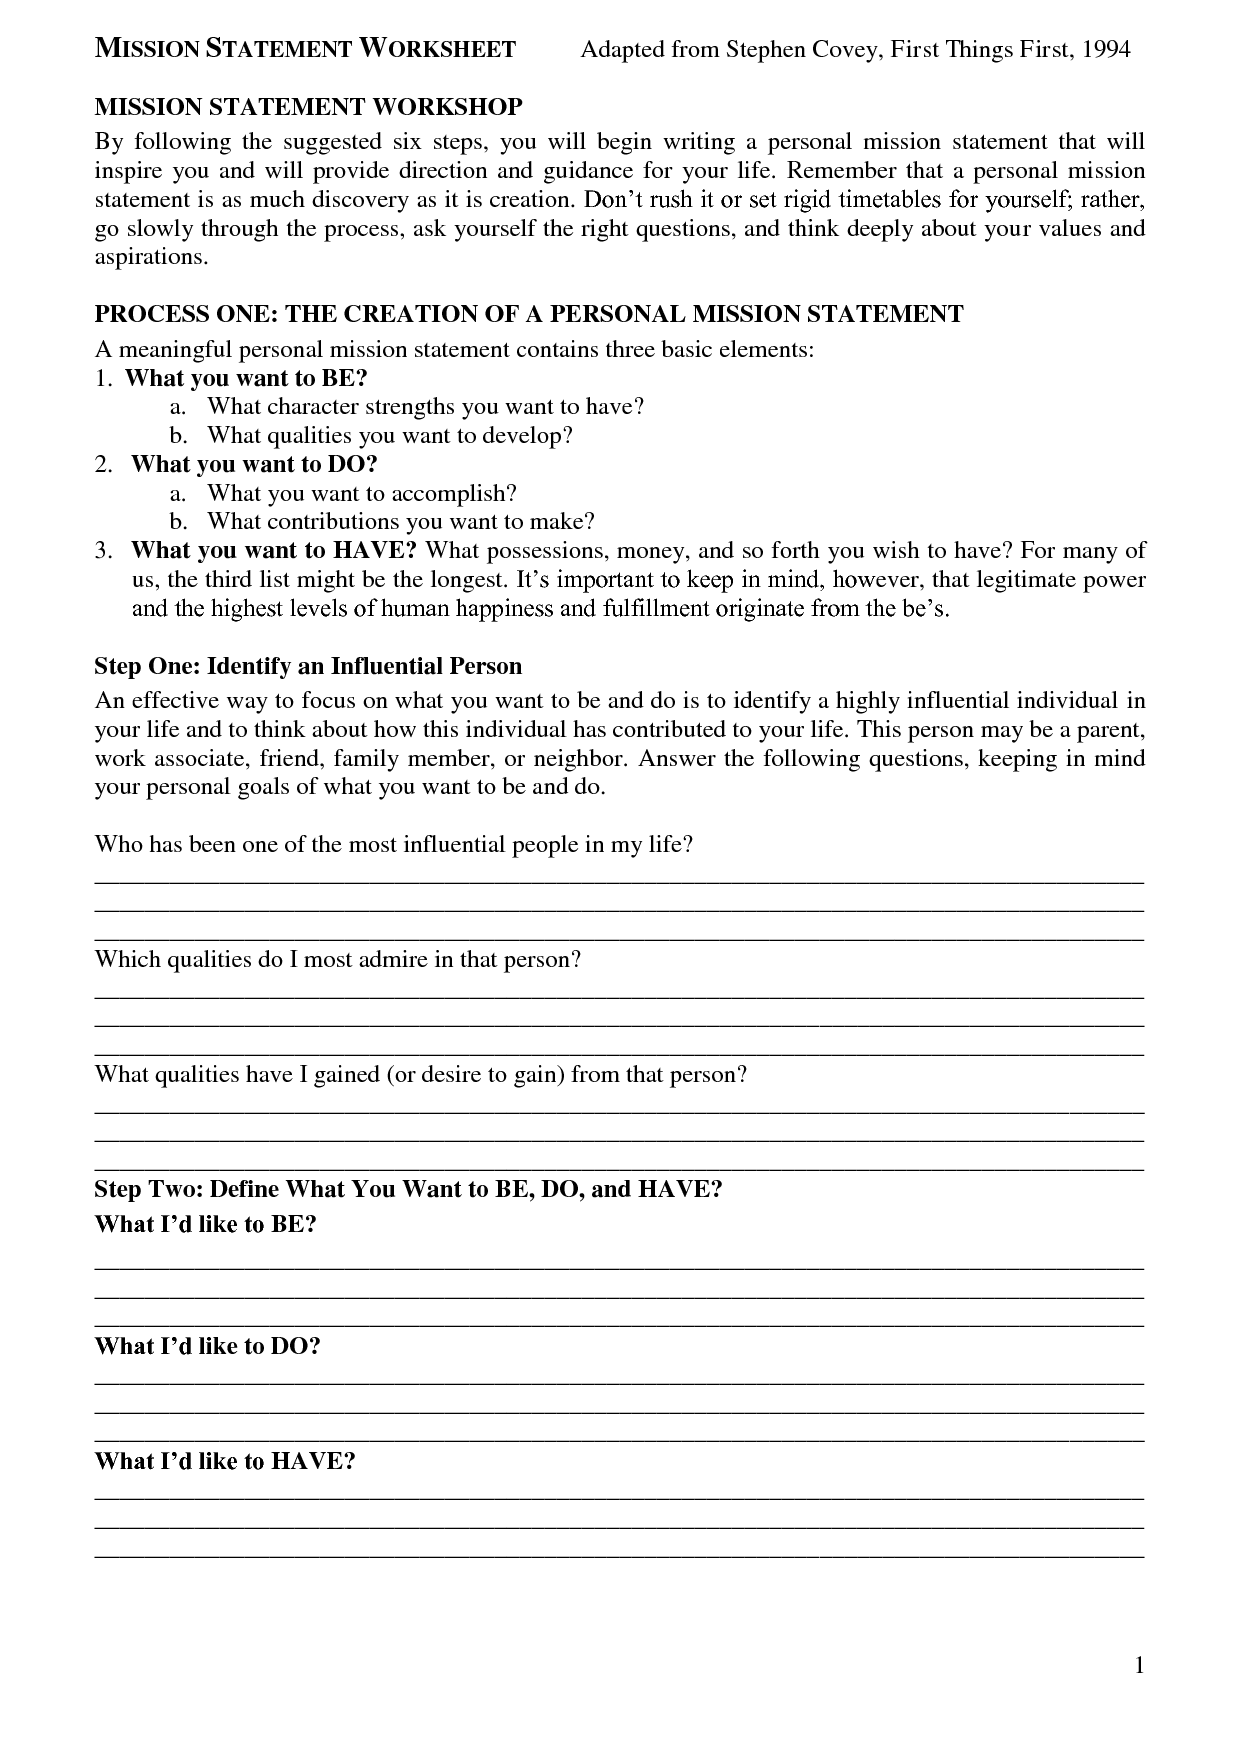 Worksheet For Personal Statement